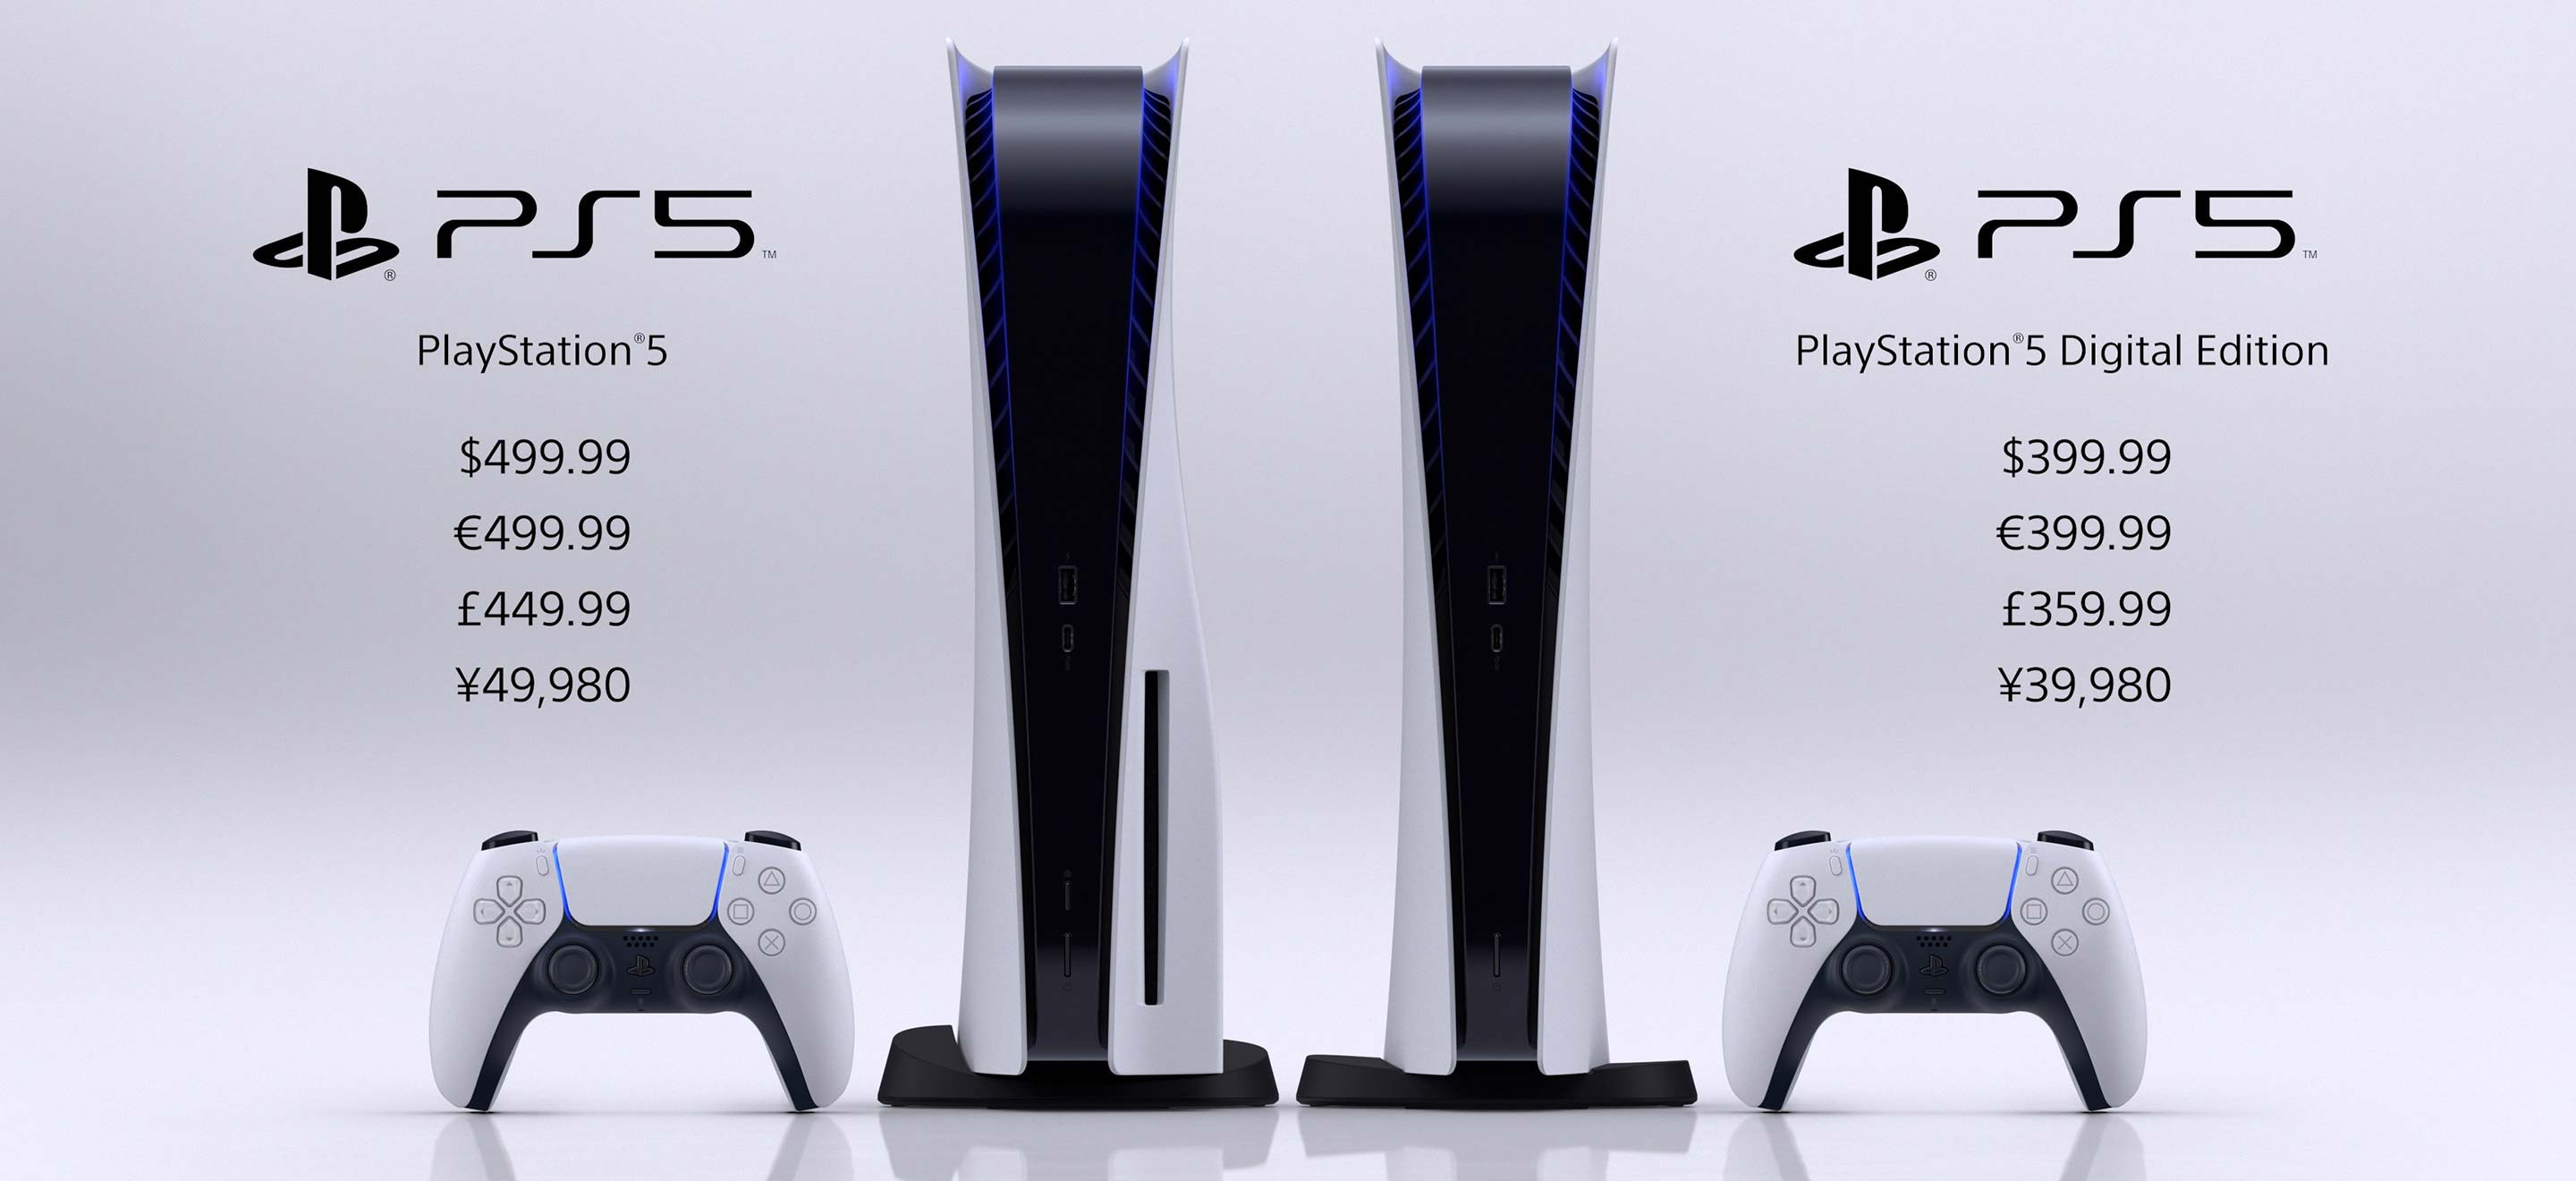 https://www.micromania.fr/on/demandware.static/-/Sites-Micromania-Library/default/dw27928ec9/fanzone/dossier/playstation/ps5-showcase_Header.jpg